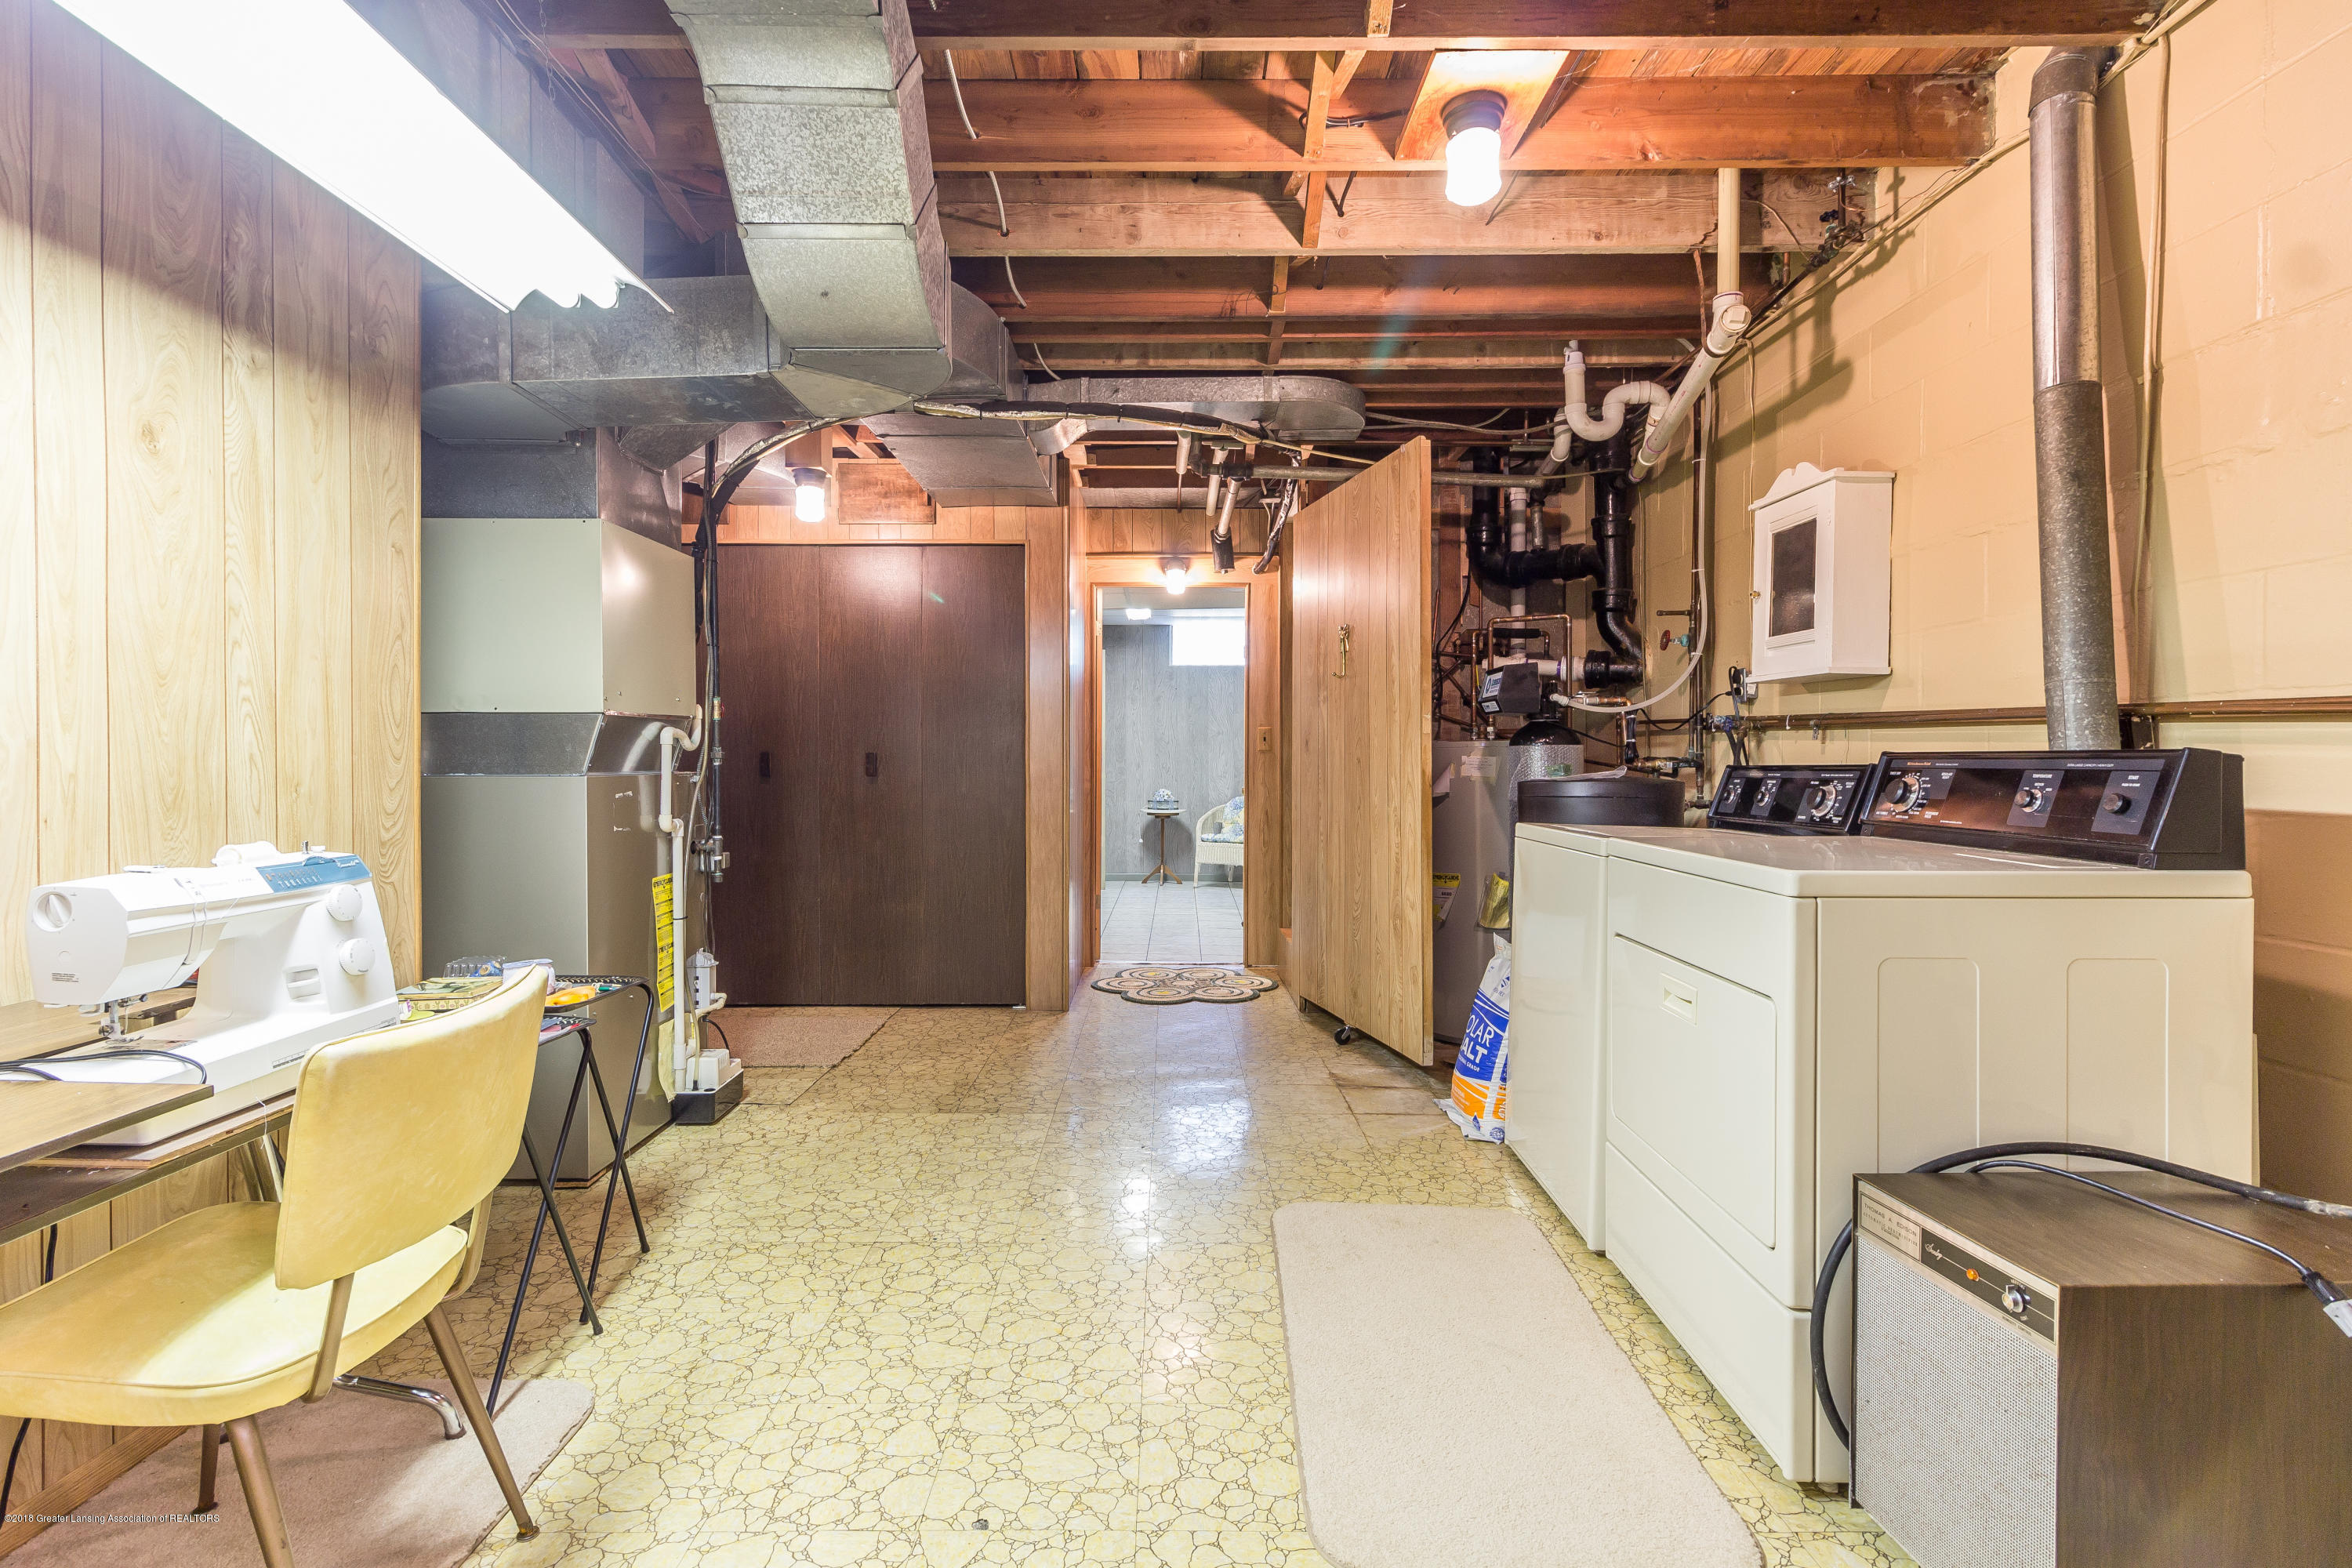 8484 Riverside Rd - Laundry Room - 22